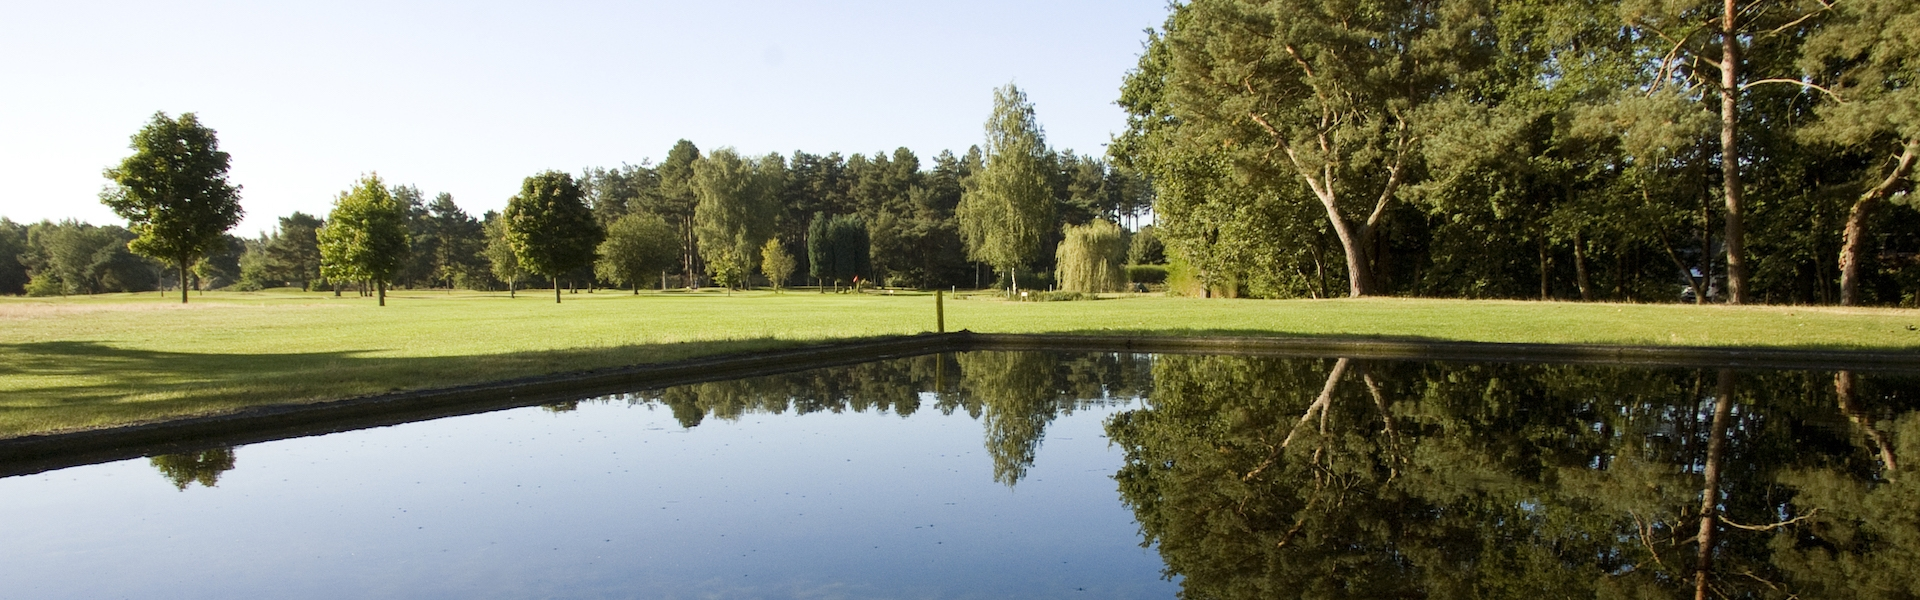 Zondag 13 november - TEXAS SCRAMBLE